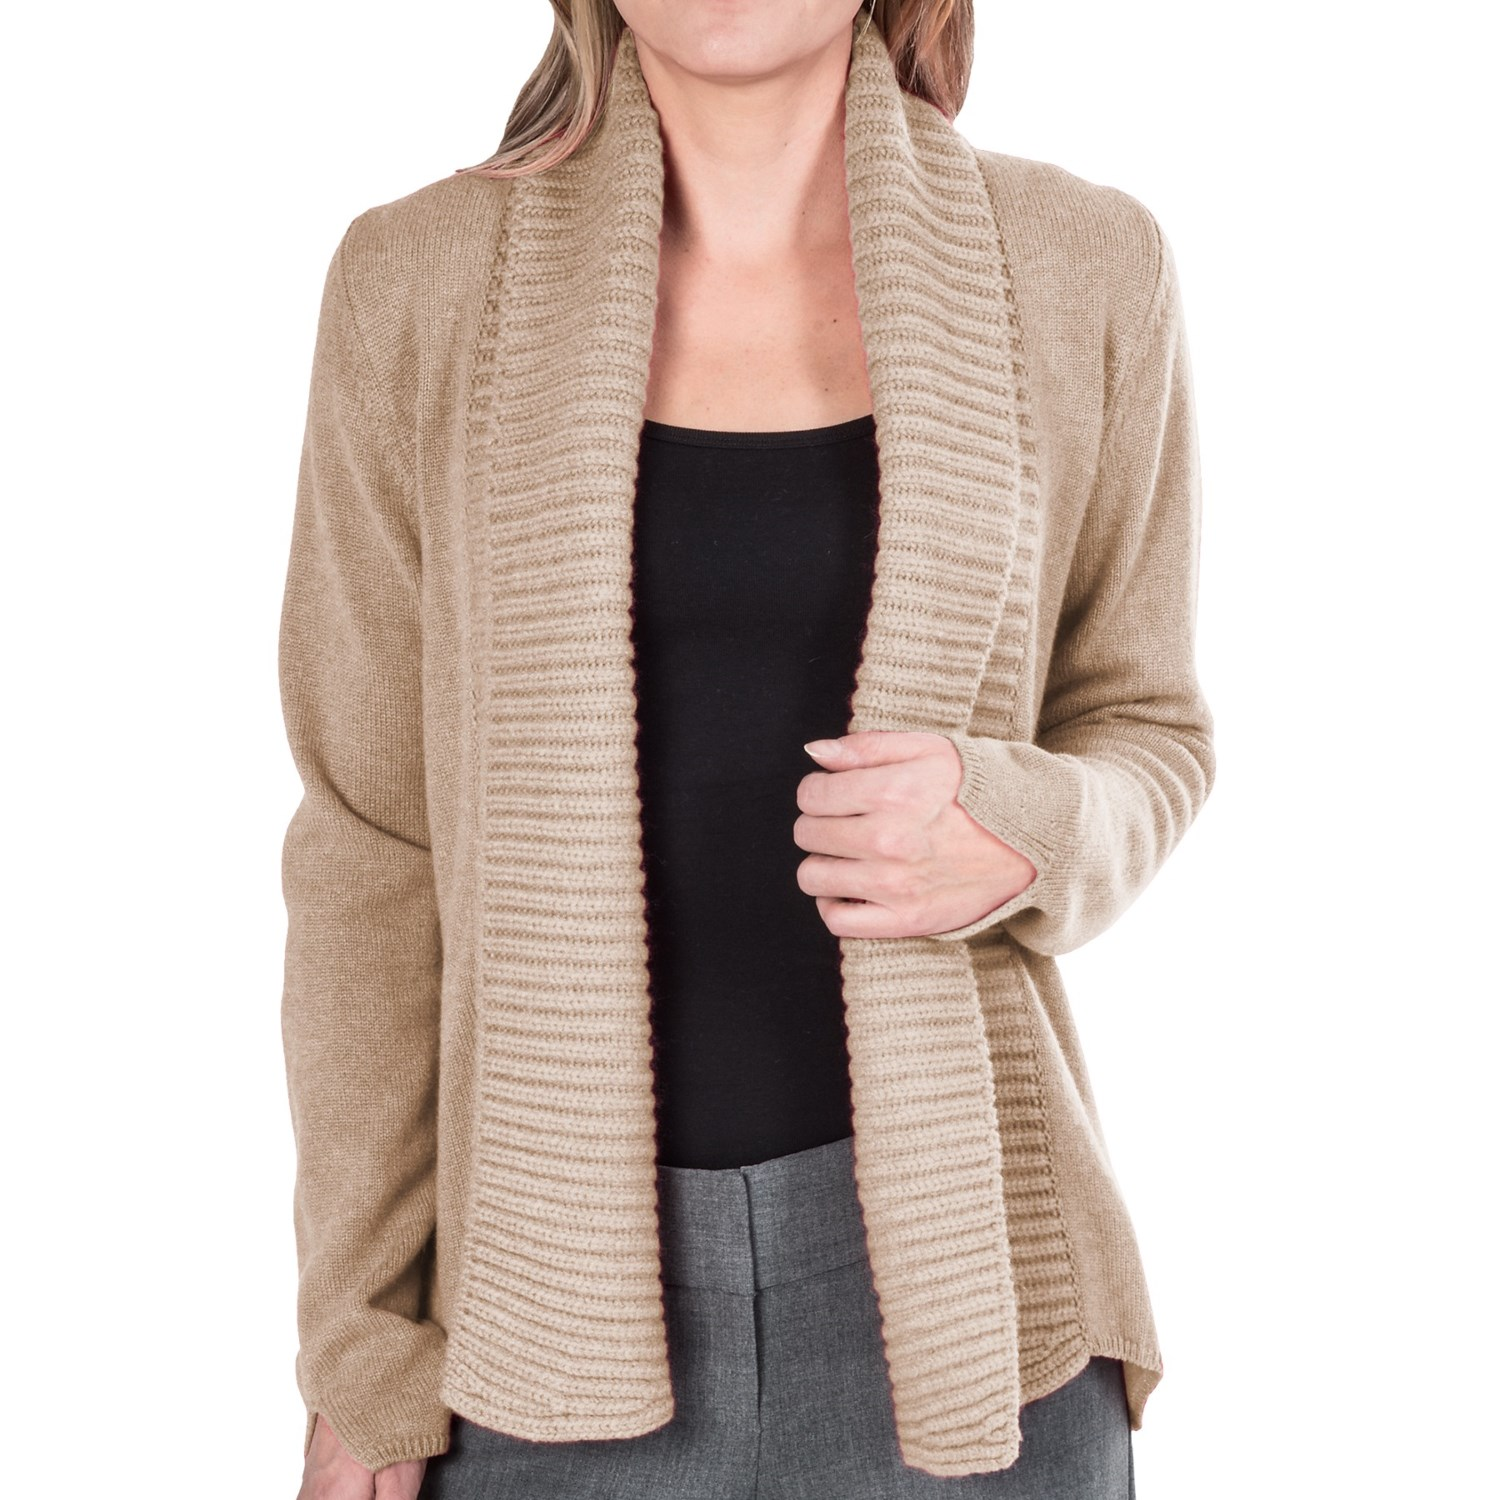 Women'S Cardigan Sweater Shawl Collar - Cardigan With Buttons